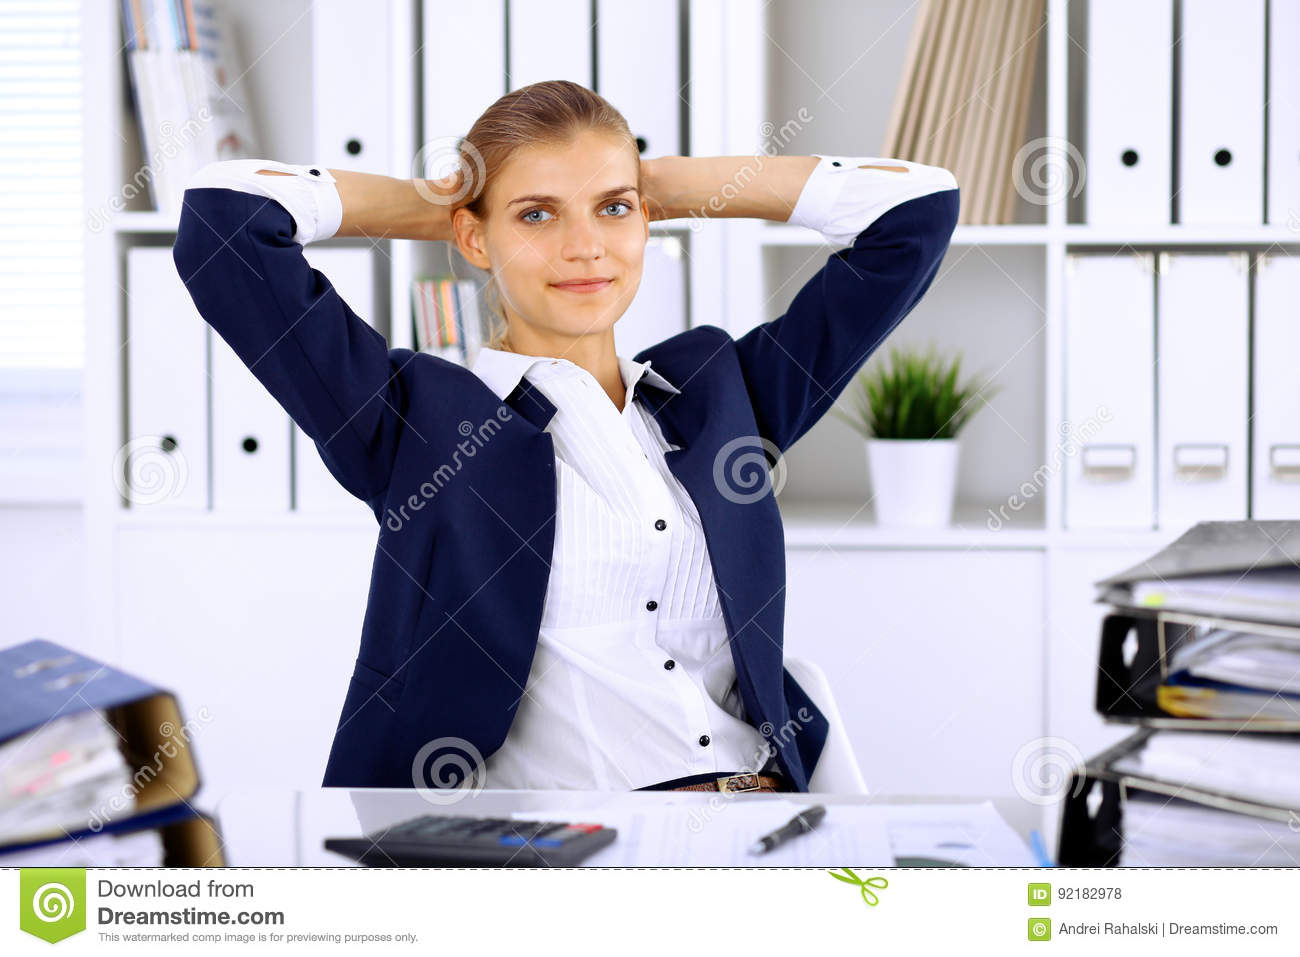 Happy business woman or female accountant having some minutes for time off and pleasure at working place